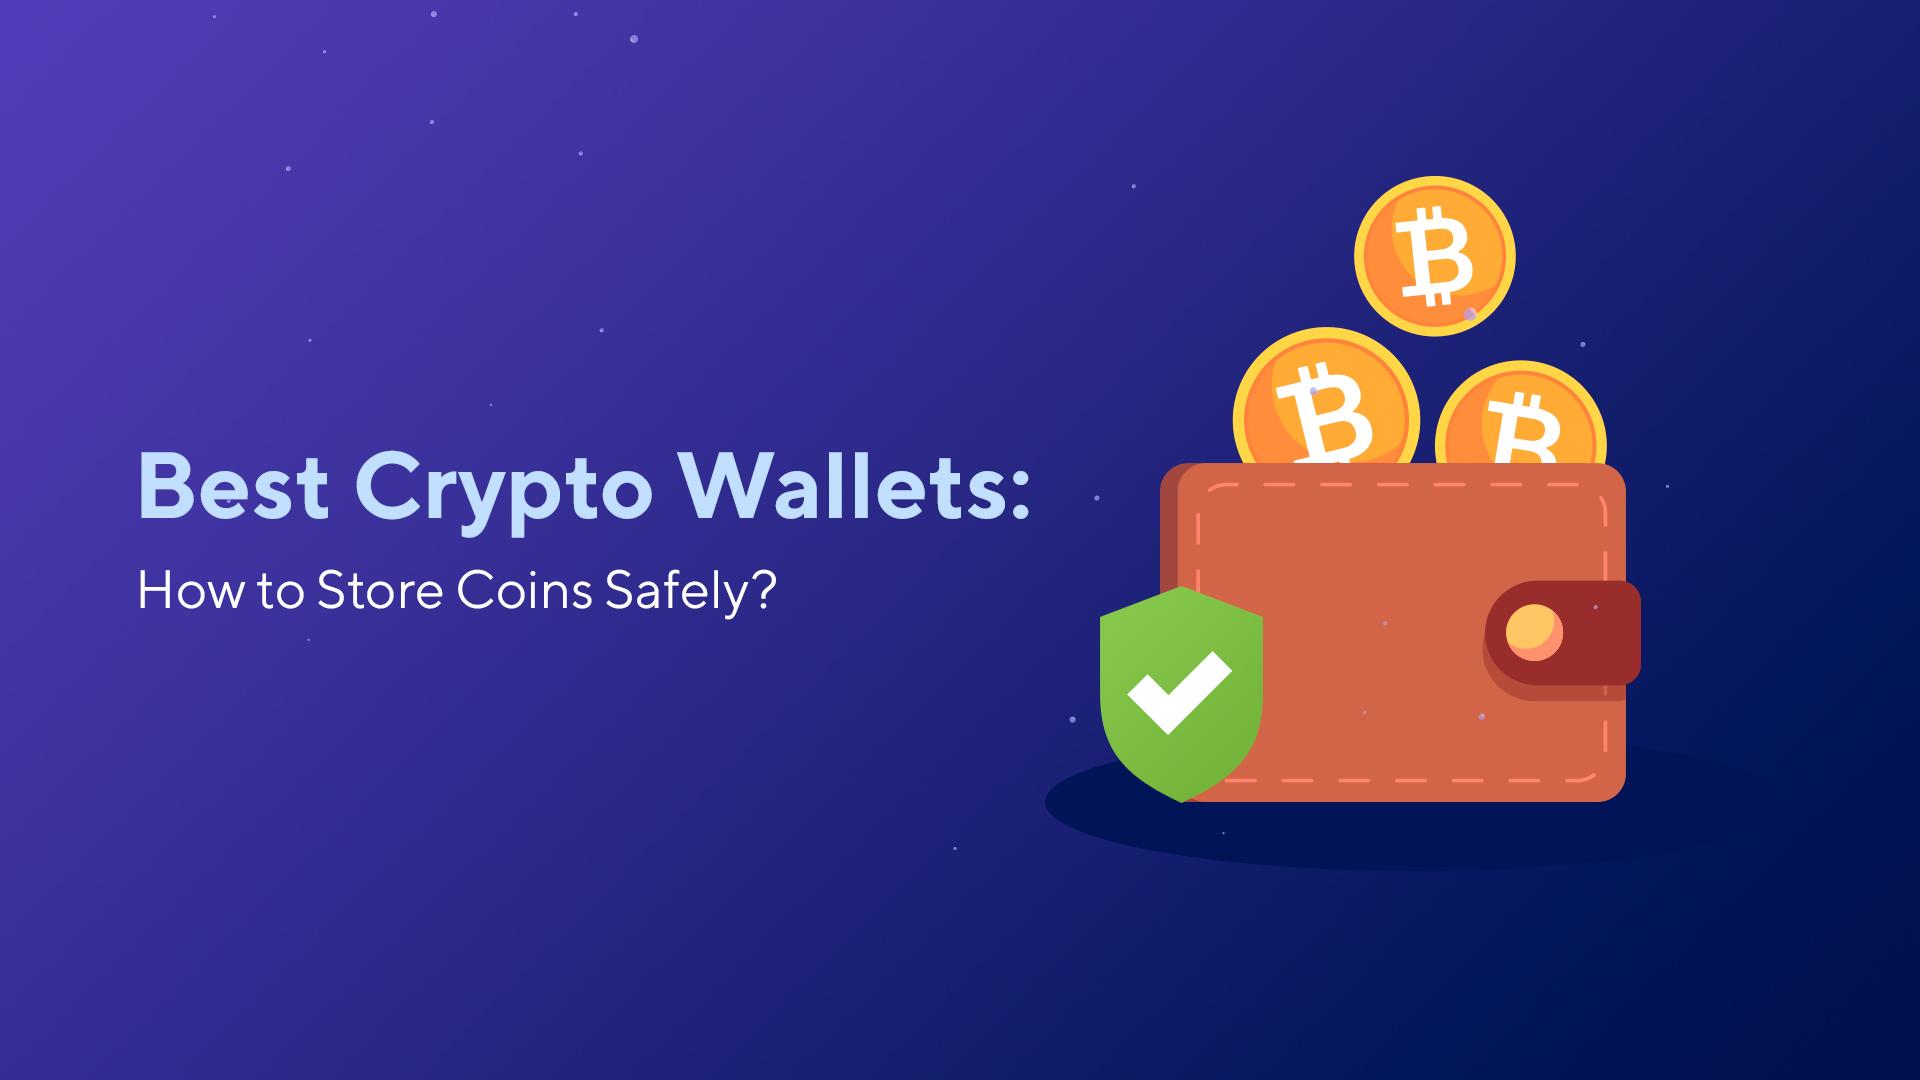 Best Crypto Wallets: How to Store Coins Safely?